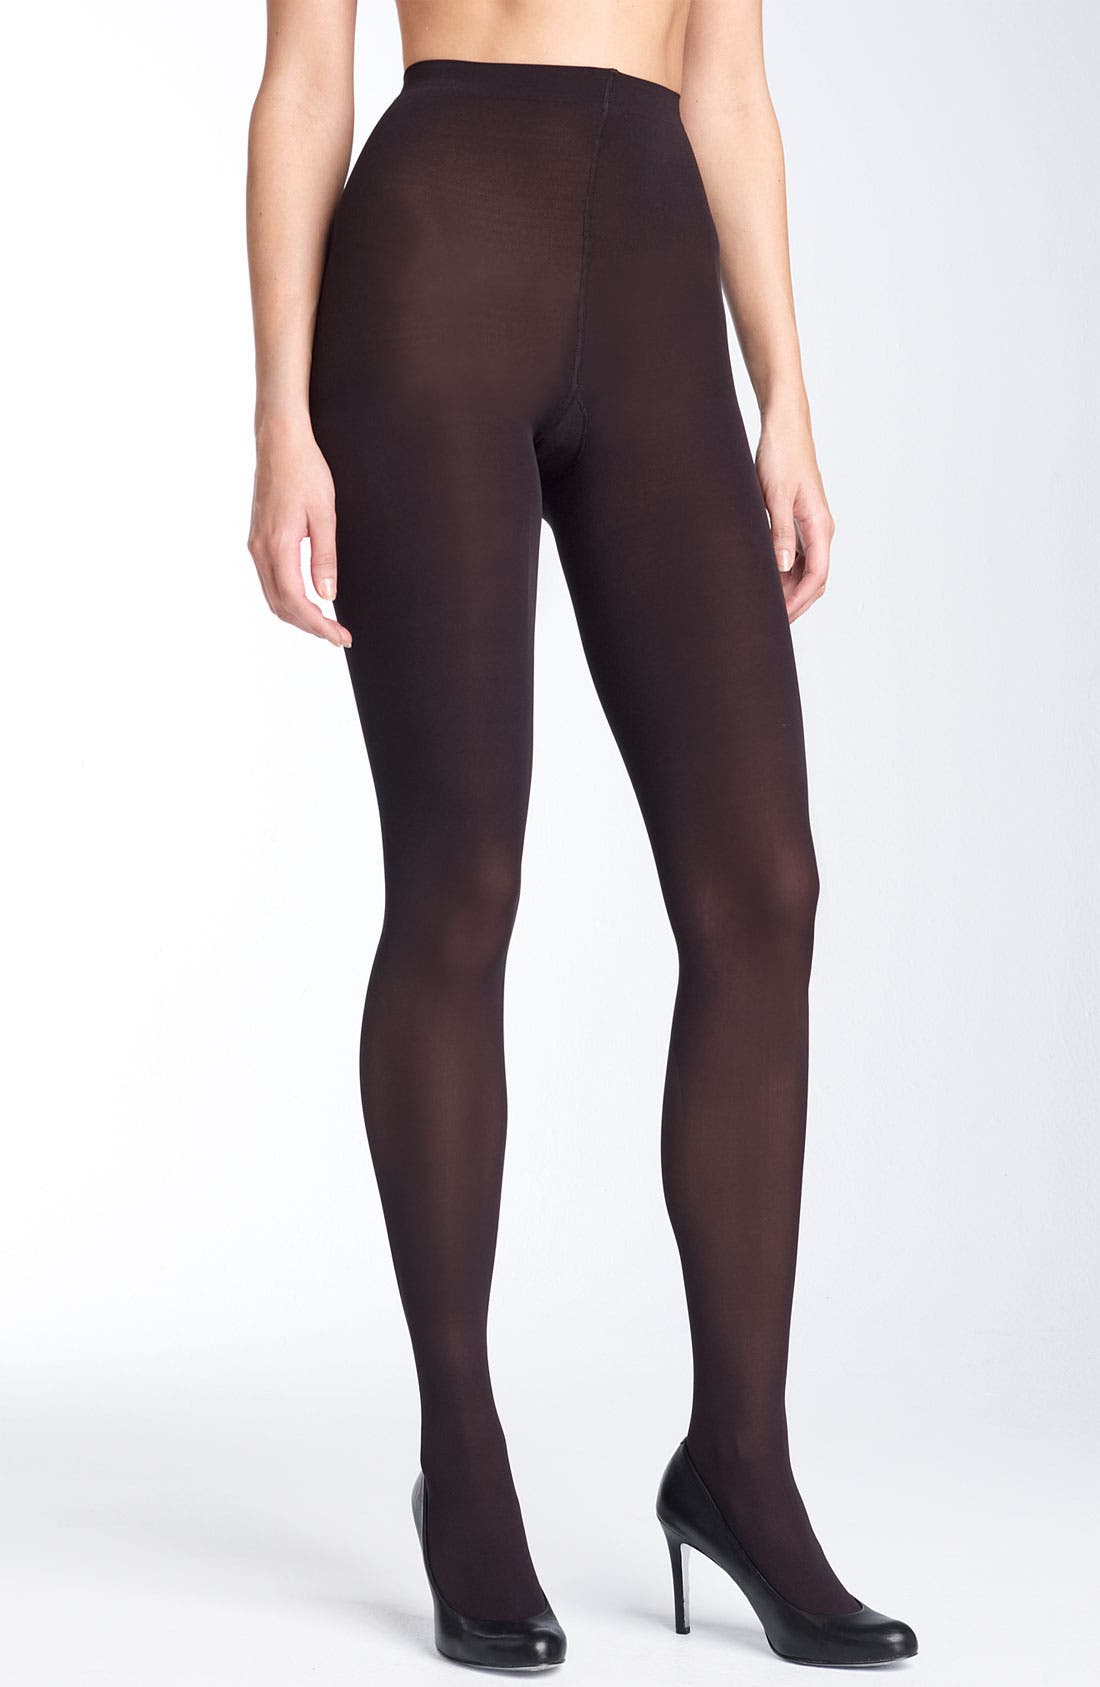 Alternate Image 1 Selected - Donna Karan Sueded Jersey Control Top Tights